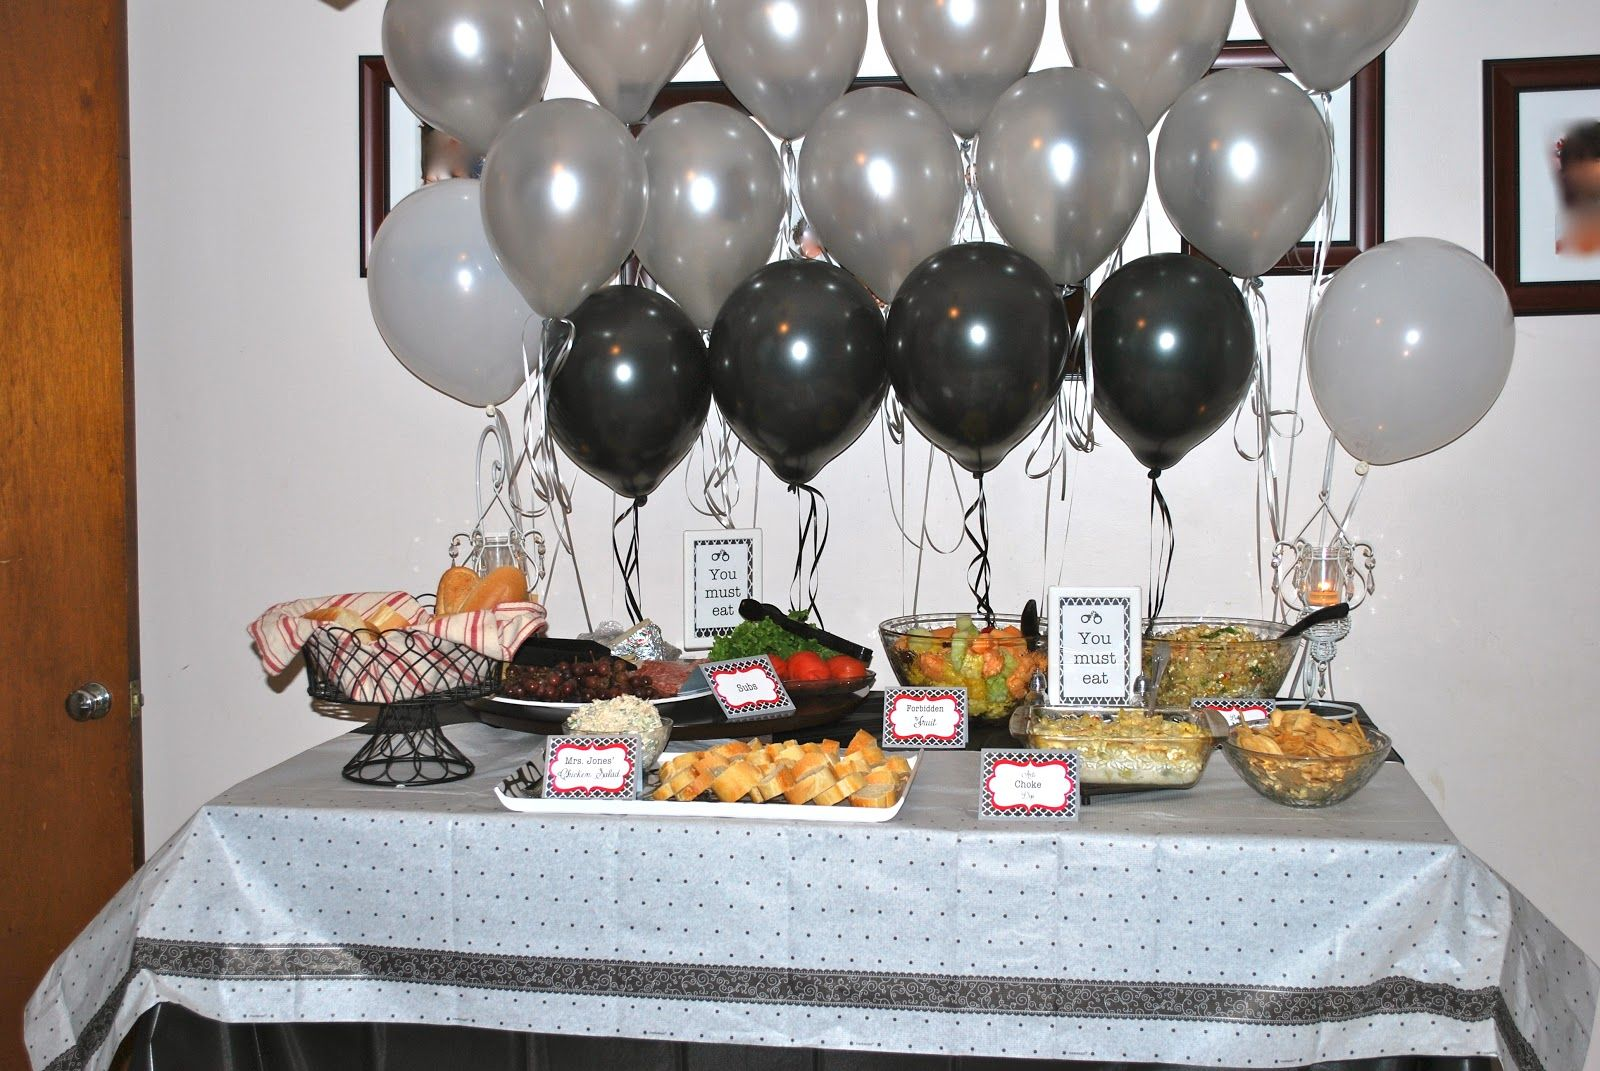 50 Shades Of Grey Decorations Fifty Shades Of Grey Whimsy Wise Events Fifty Shades Of Grey